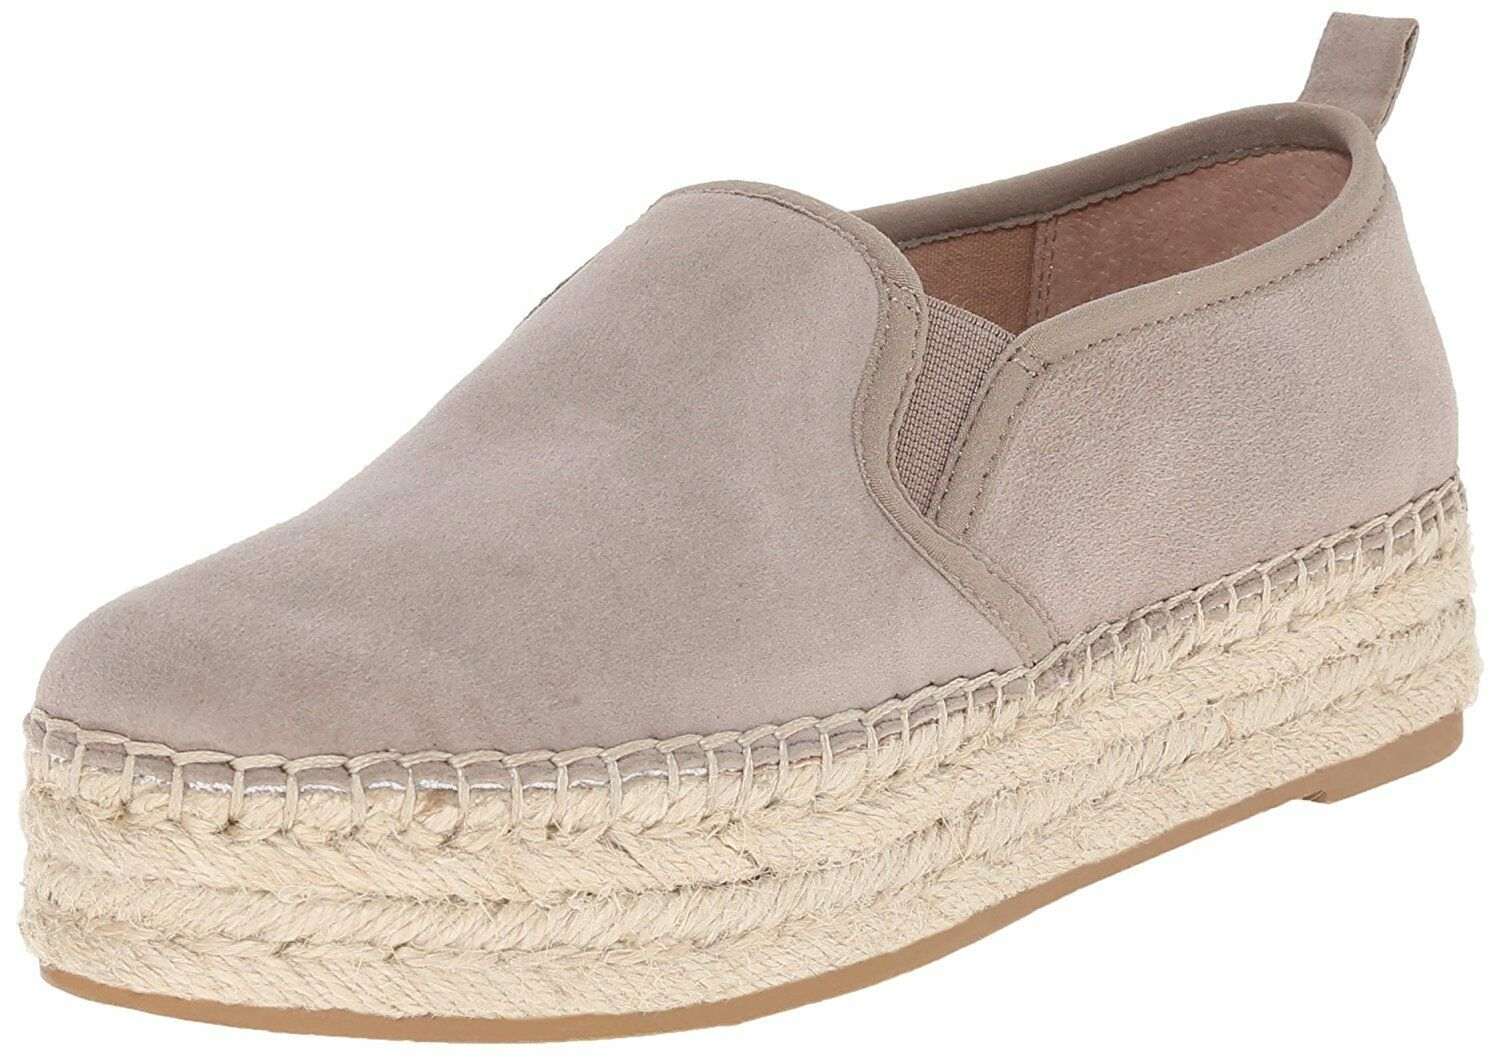 971a07c01bf8dc Sam Edelman E0778L1 Womens Carrin Platform Espadrille Slip-on Sneaker for  sale online